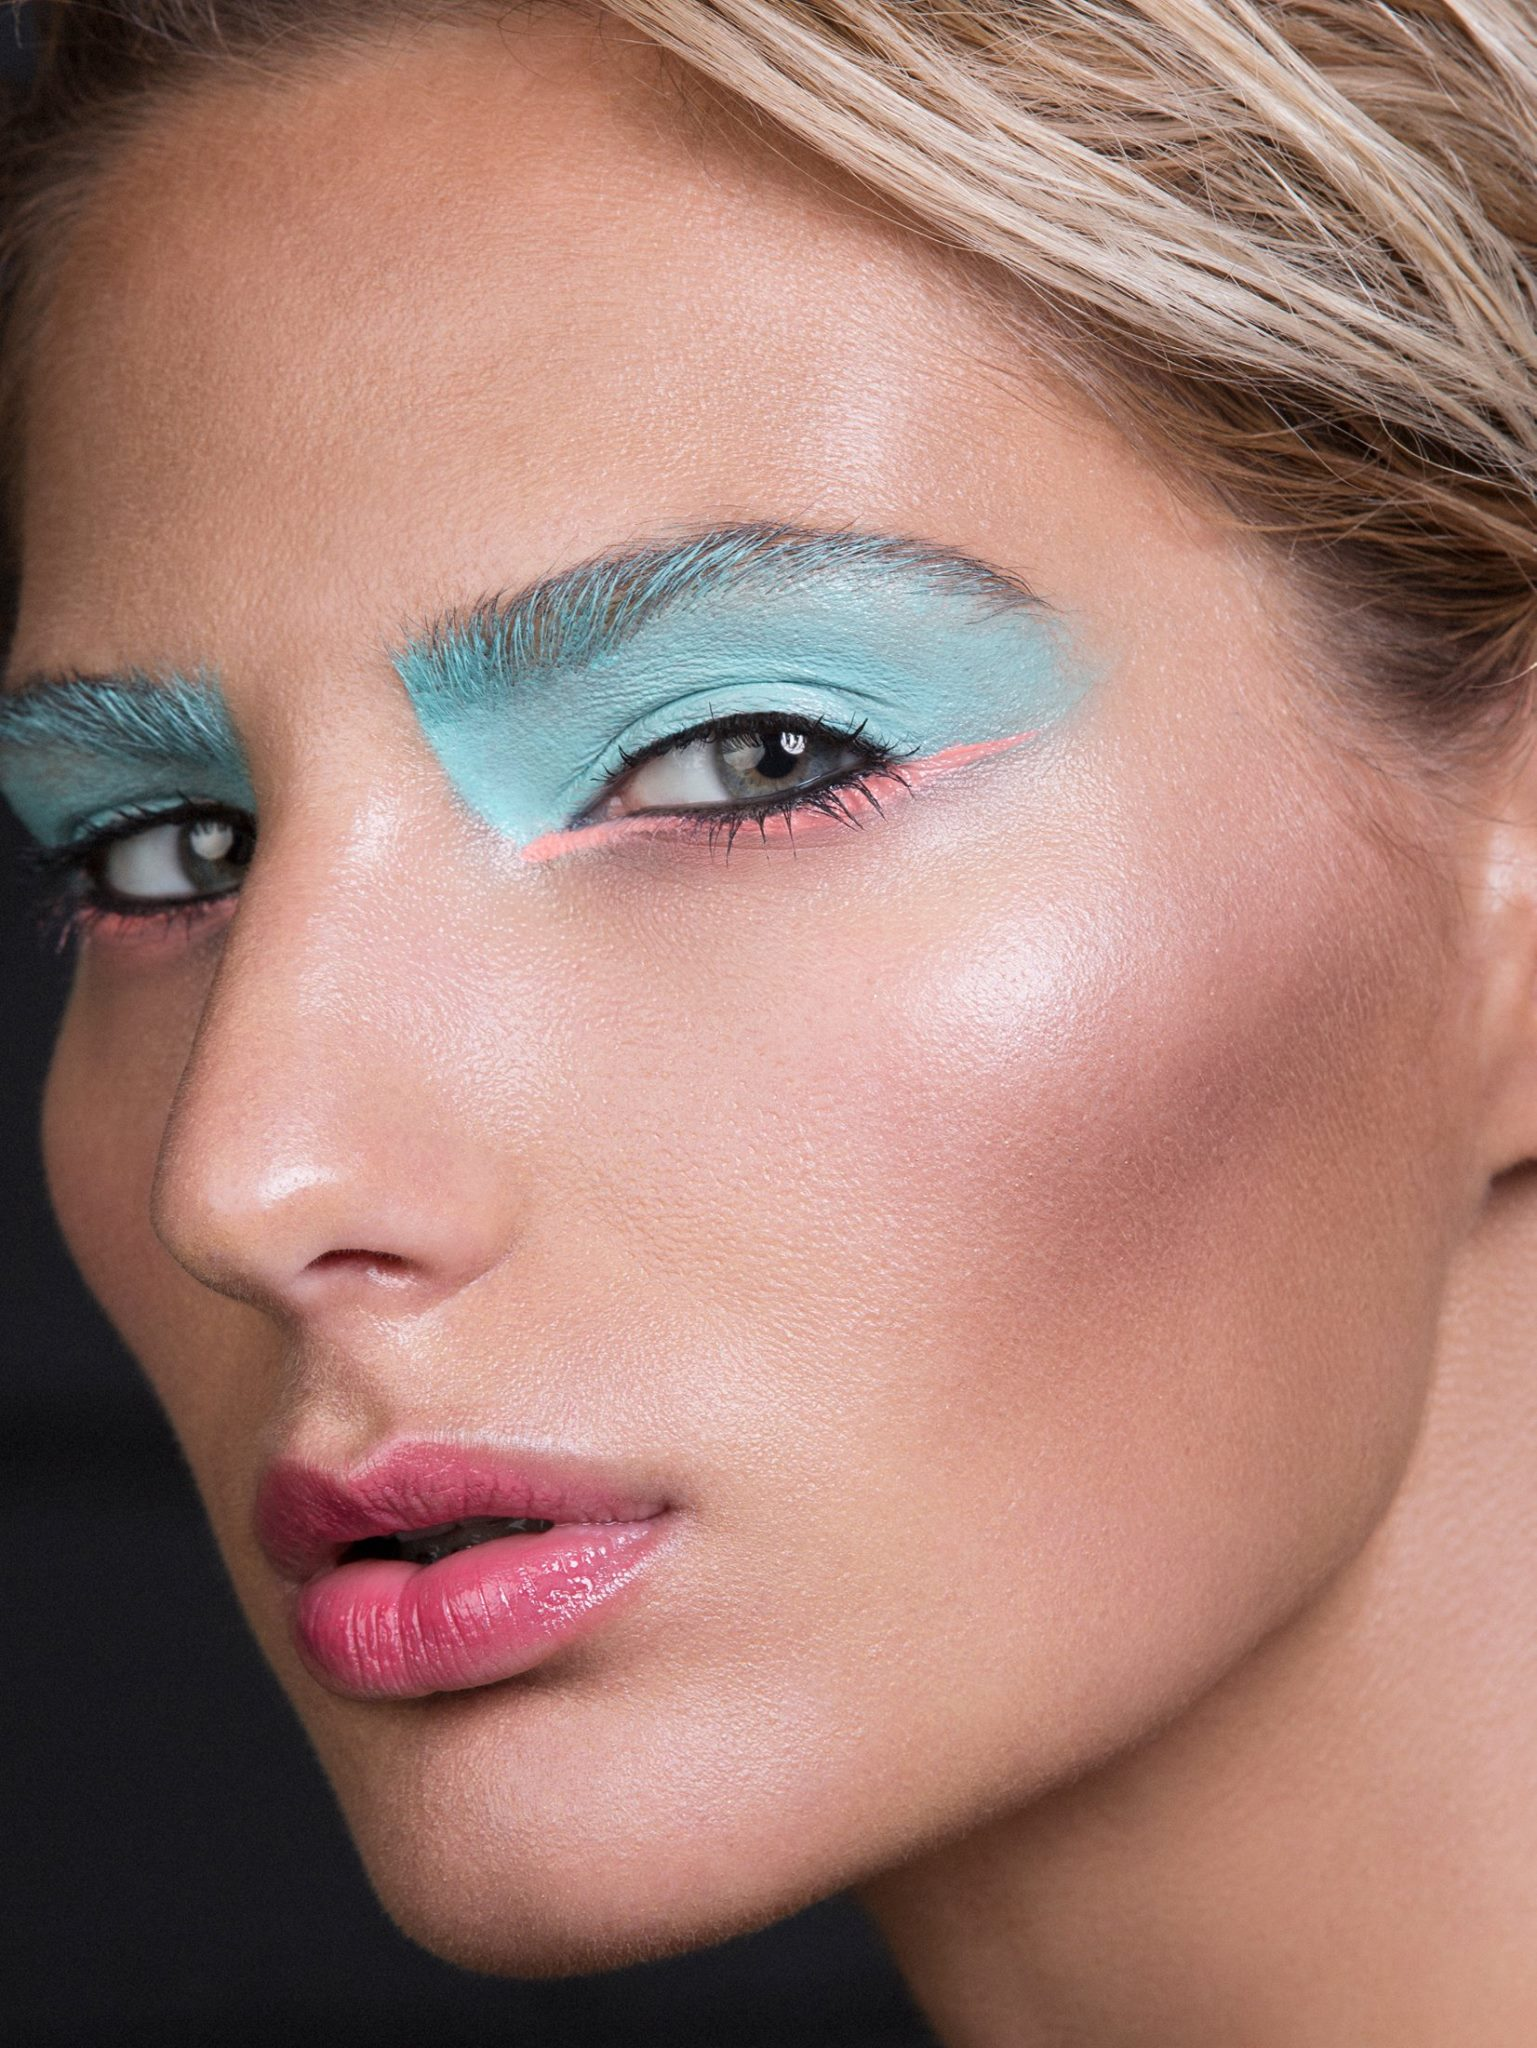 Beauty Makeup with Dewy Highlighted Skin and Blue Eyeshadow by Jaynelle Lording